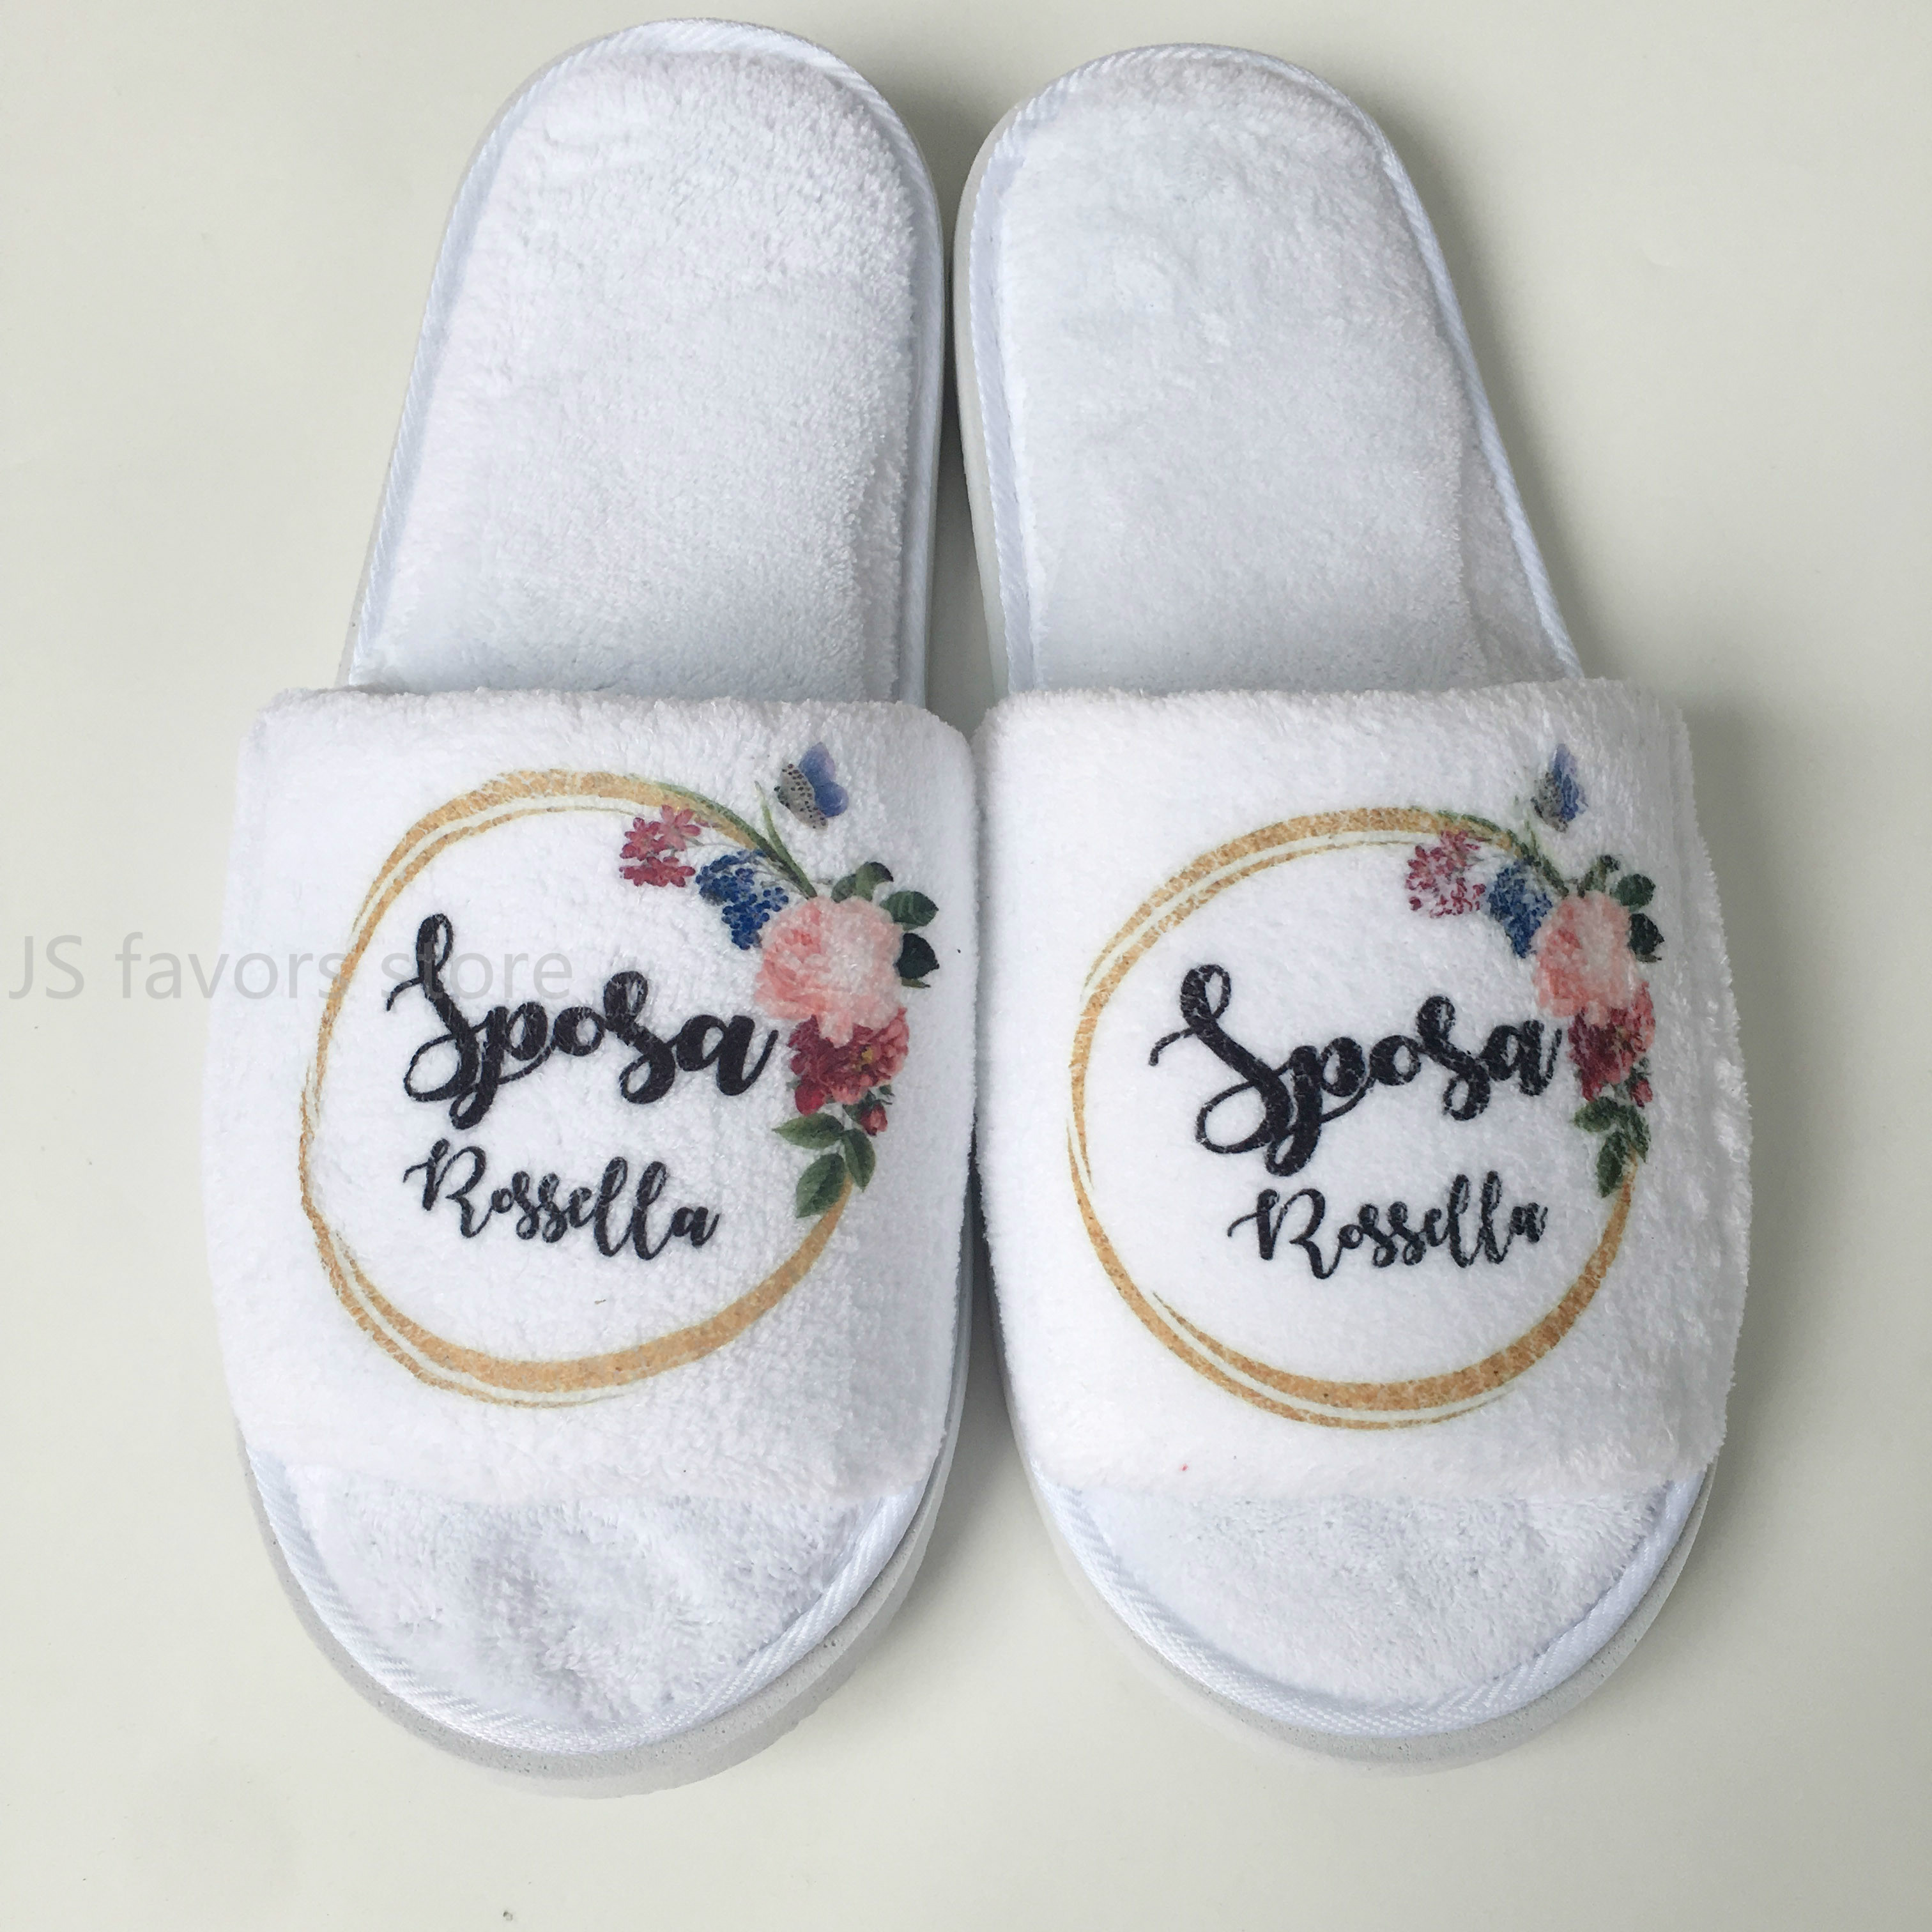 5pairs lot Personalized Wedding Slippers With flower Bride gift Bridesmaid Gifts Custom any language Bachelorette Party Favors